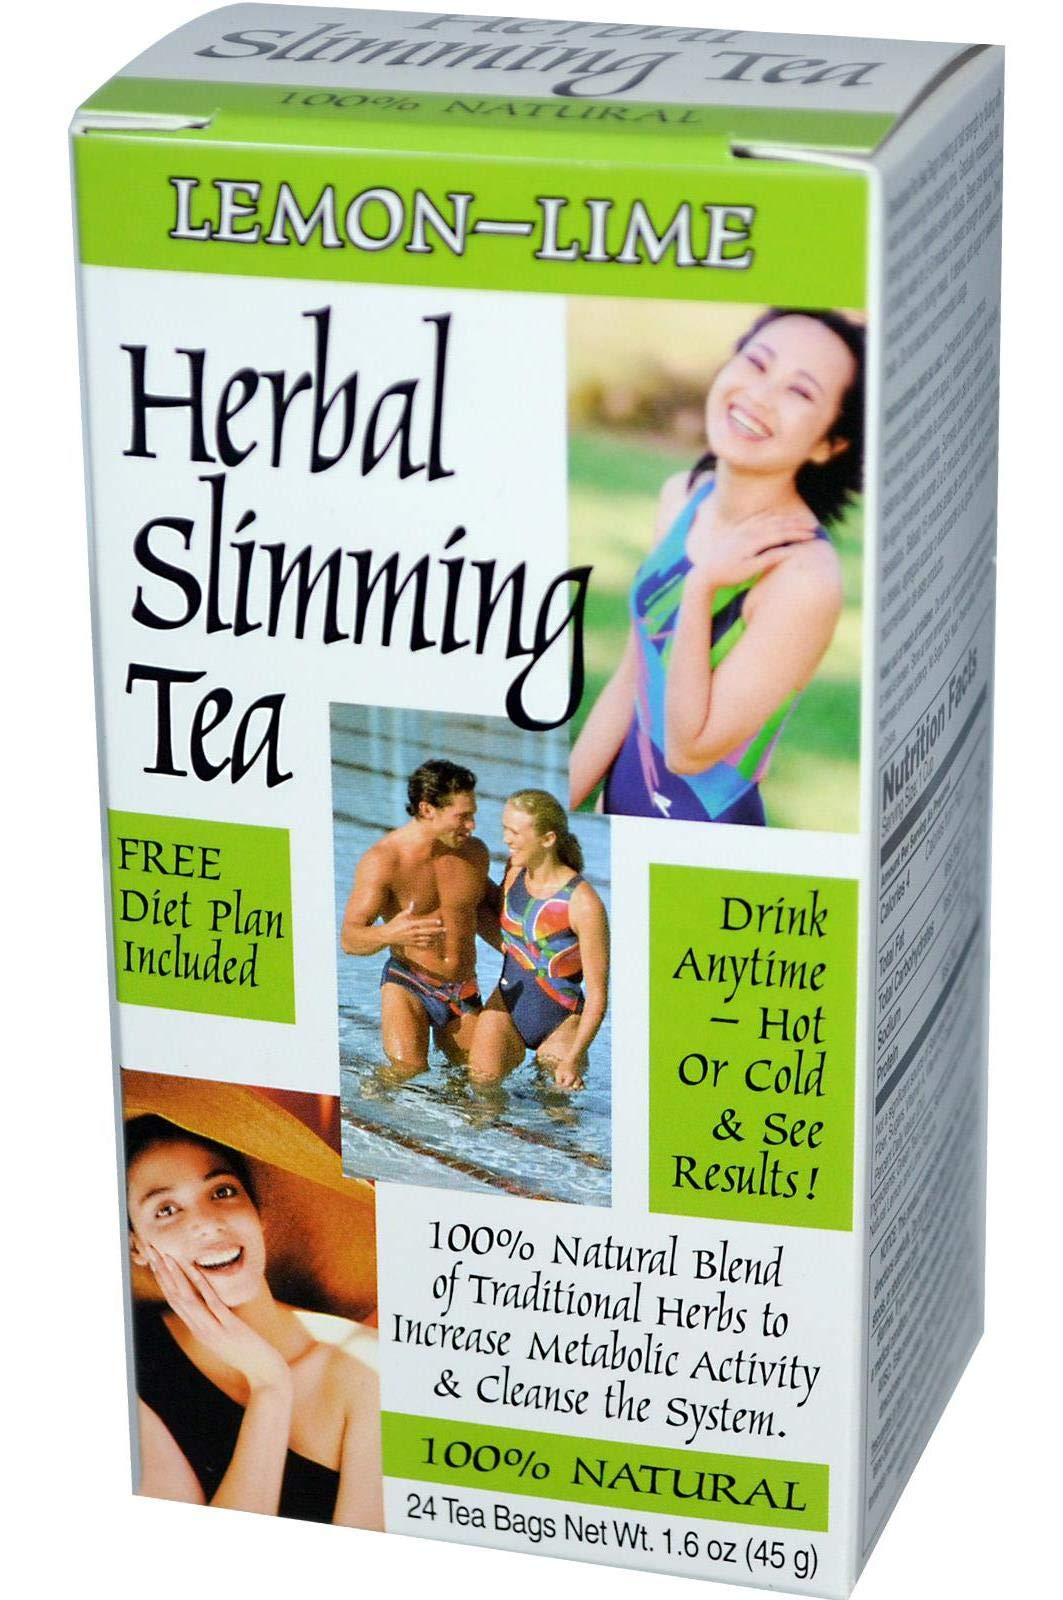 21st-Century-Health-Care-Herbal-Slimming-Tea-Zitrone-Limette-24-Teebeutel-16-oz-45-g-21-x-26-x-48-inches